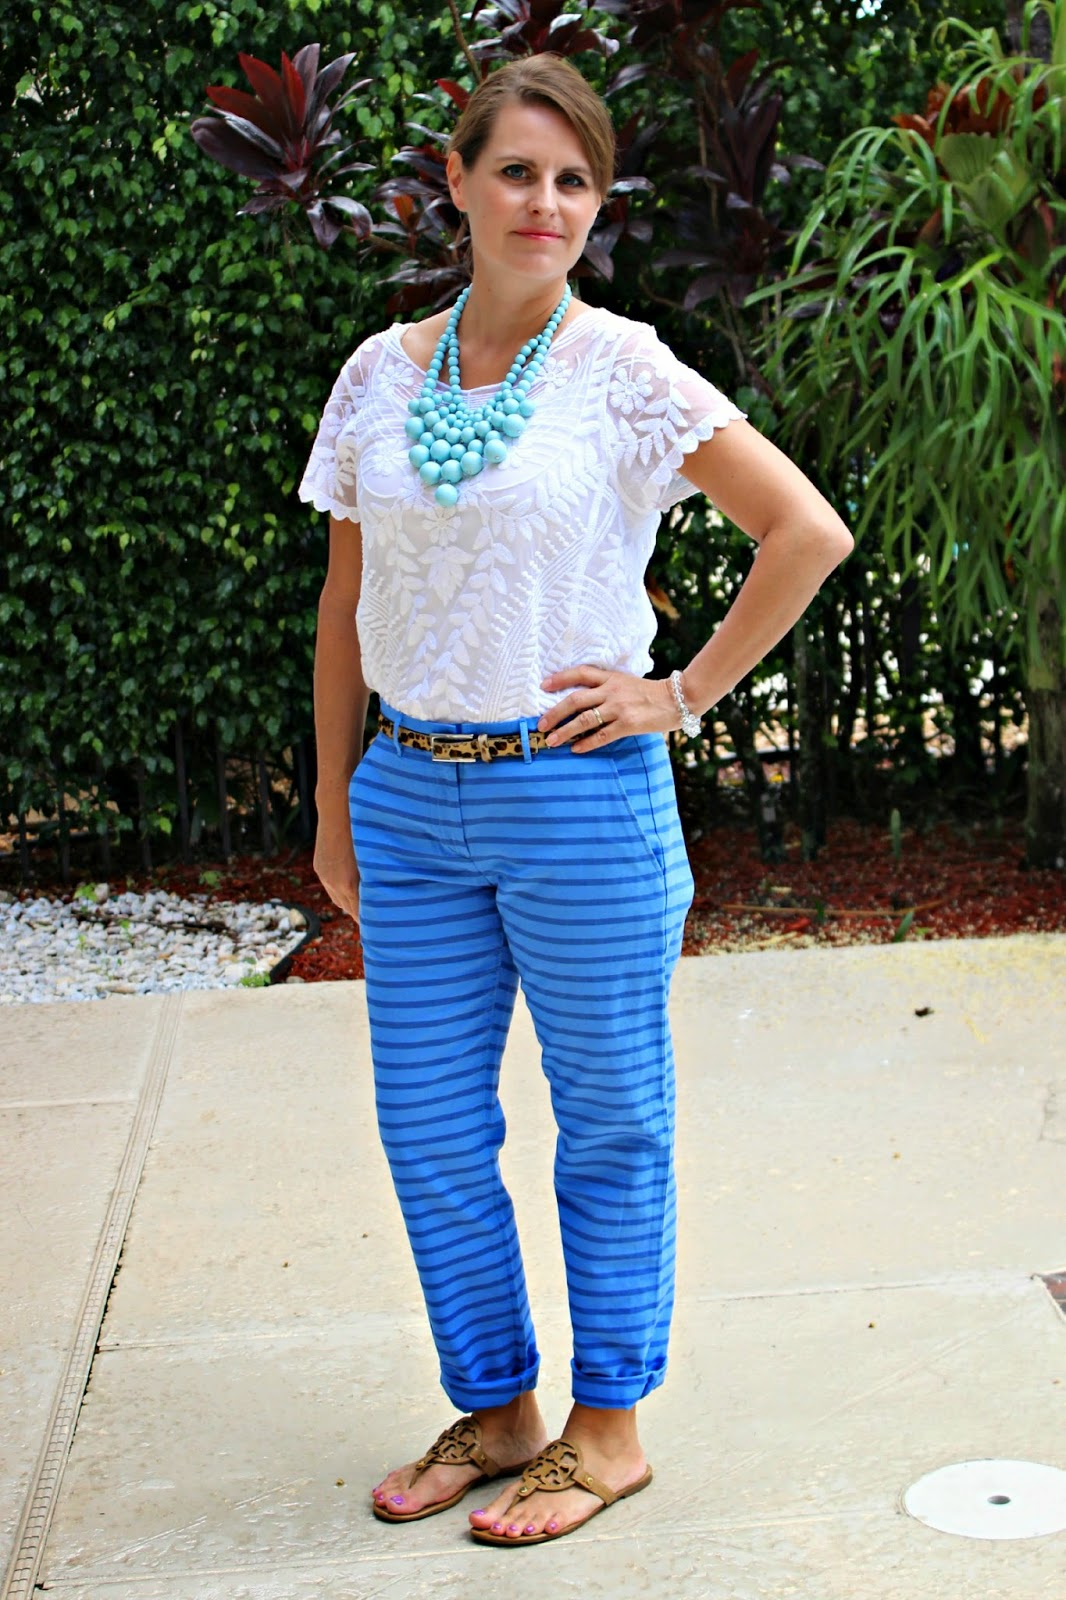 Express baroque lace top, gap striped boyfriend pants, leopard belt. mint blue bubble necklace